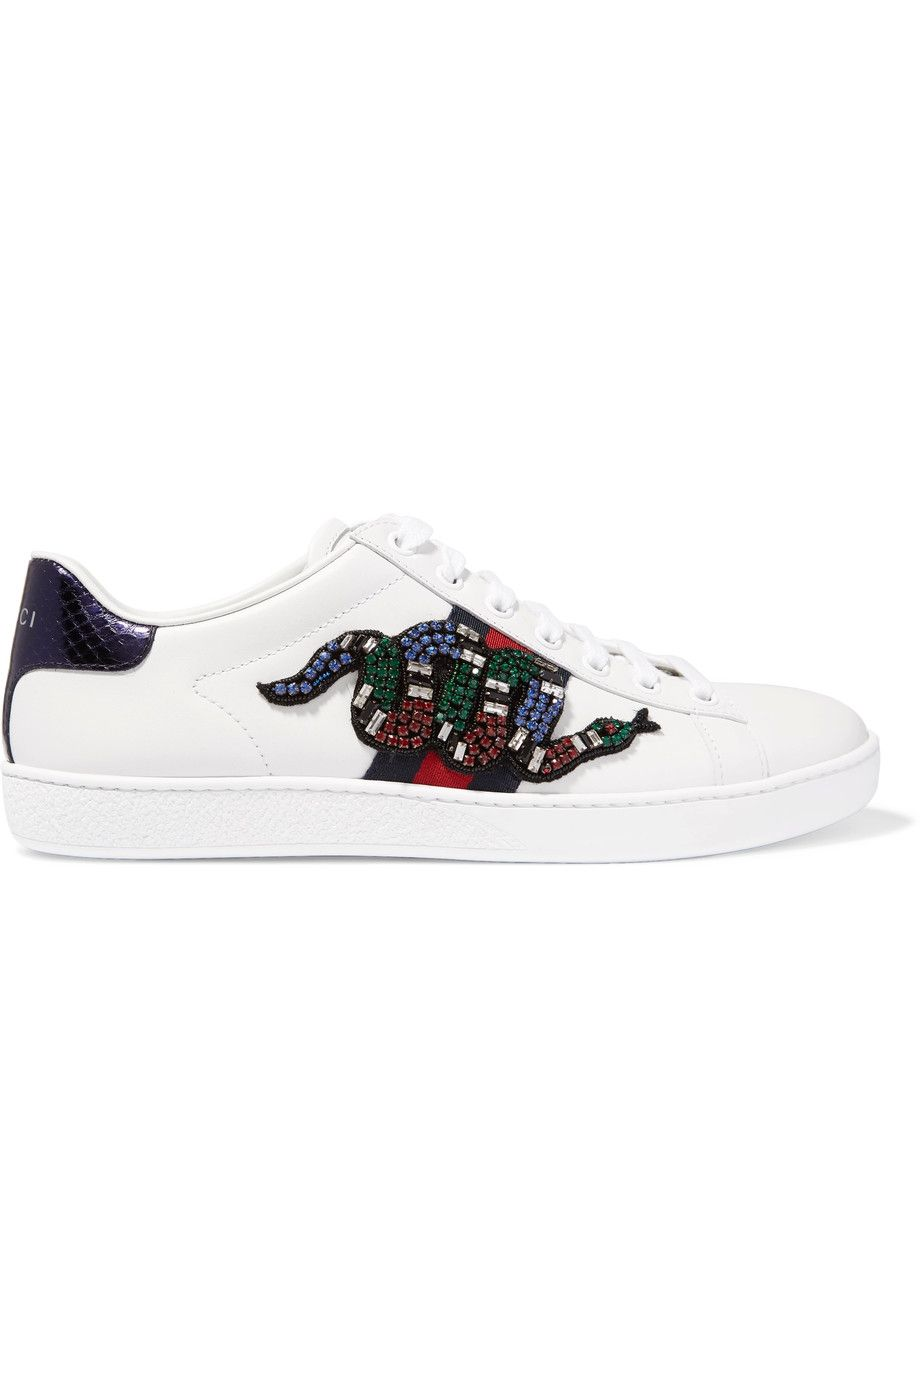 Sneakers, Leather sneakers, Gucci